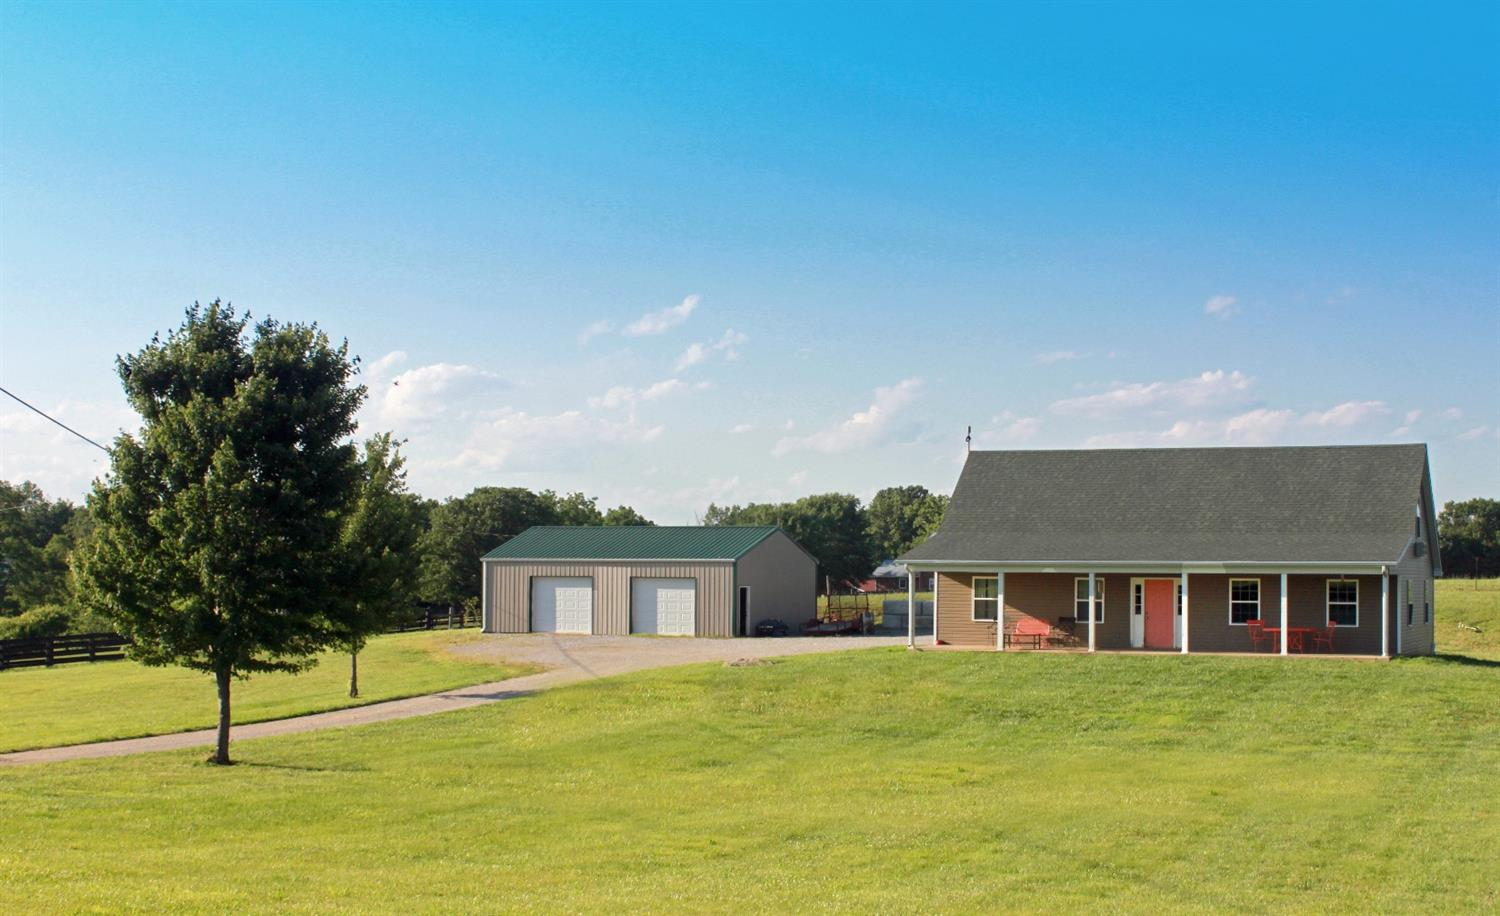 Wonderful%20home%20with%20direct%20access%20to%20Salt%20River%20on%20a%20beautiful%205%20acre%20lot!%20Home%20offers%20an%20updated%20kitchen%20and%20hardwood%20floors.%20Central%20heat%20and%20air.%20Large%20country%20covered%20front%20porch%20and%20amazing%20views%20of%20the%20river.%20Private%20river%20access%20and%20large%20detached%20garage%20with%20lots%20of%20room%20for%20storage.%20Clean%20yard%20and%20spacious%20lot.%20Large%20rooms%20with%20first%20floor%20master%20and%20laundry%20room.%20New%20vinyl%20siding%20and%20windows.%20Newly%20updated%20move%20in%20ready%20home!